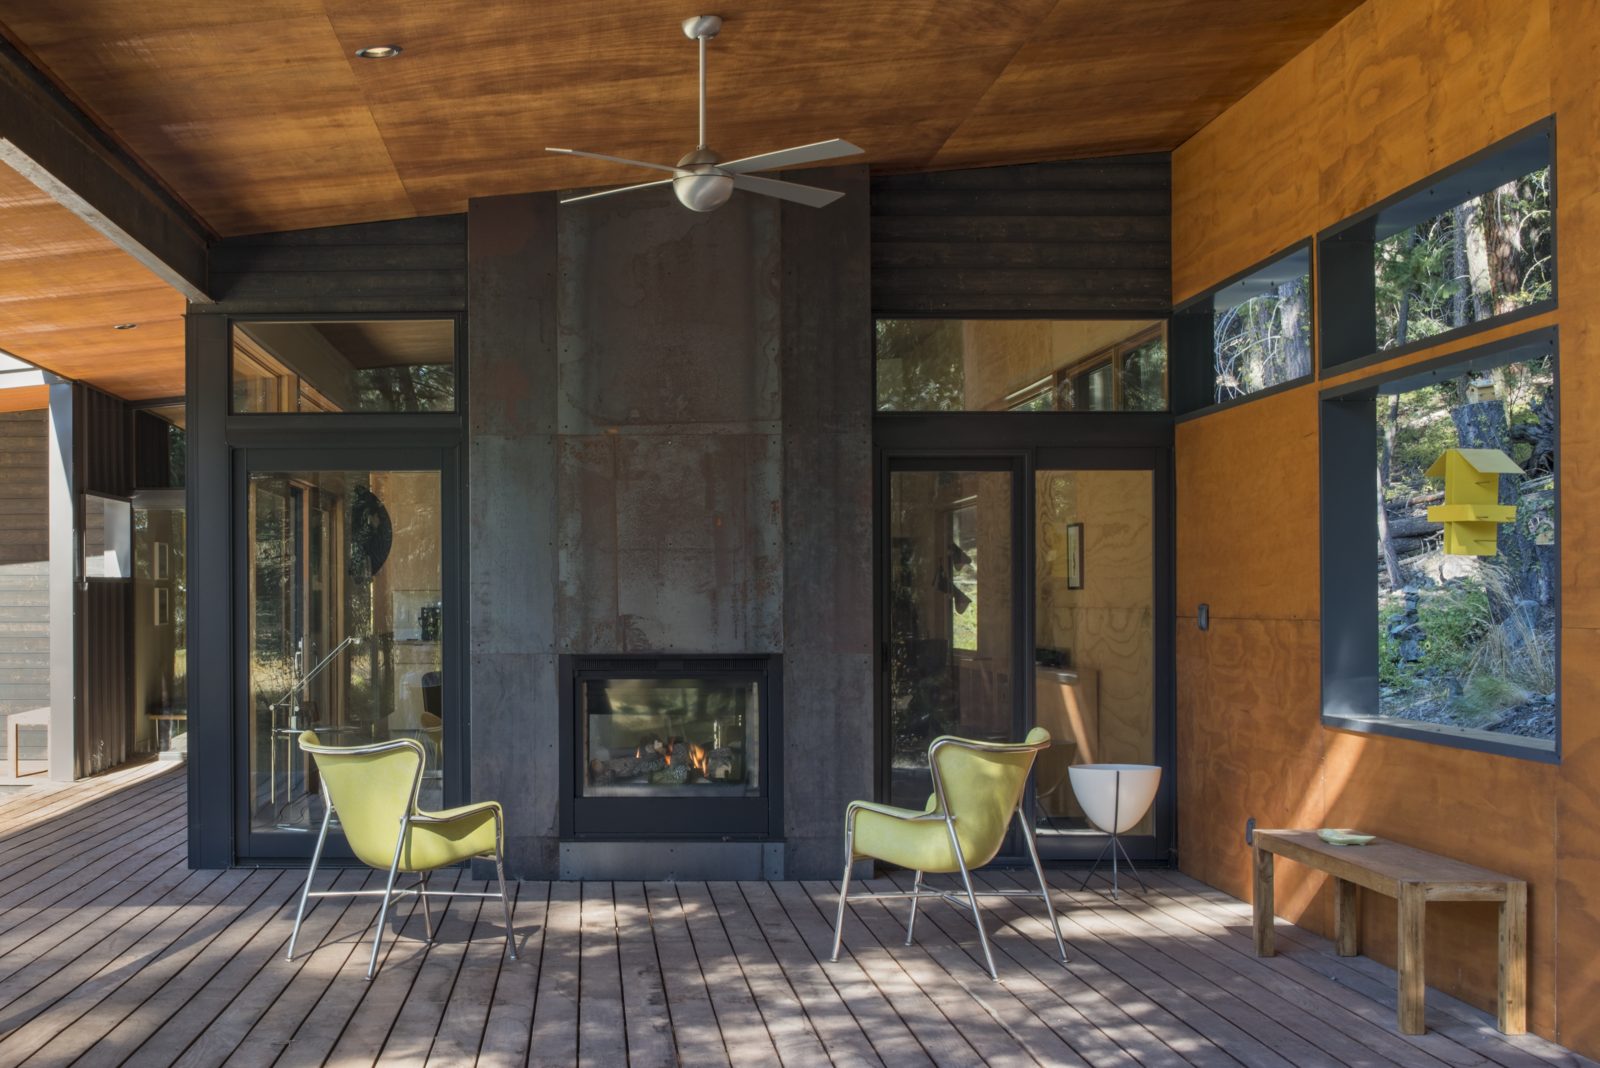 A modern cabin in Washington's Methow Valley has a fireplace with glazing on to opposite sides, so its owners can watch the embers of the fireplace glowing from both indoors and out on the patio.